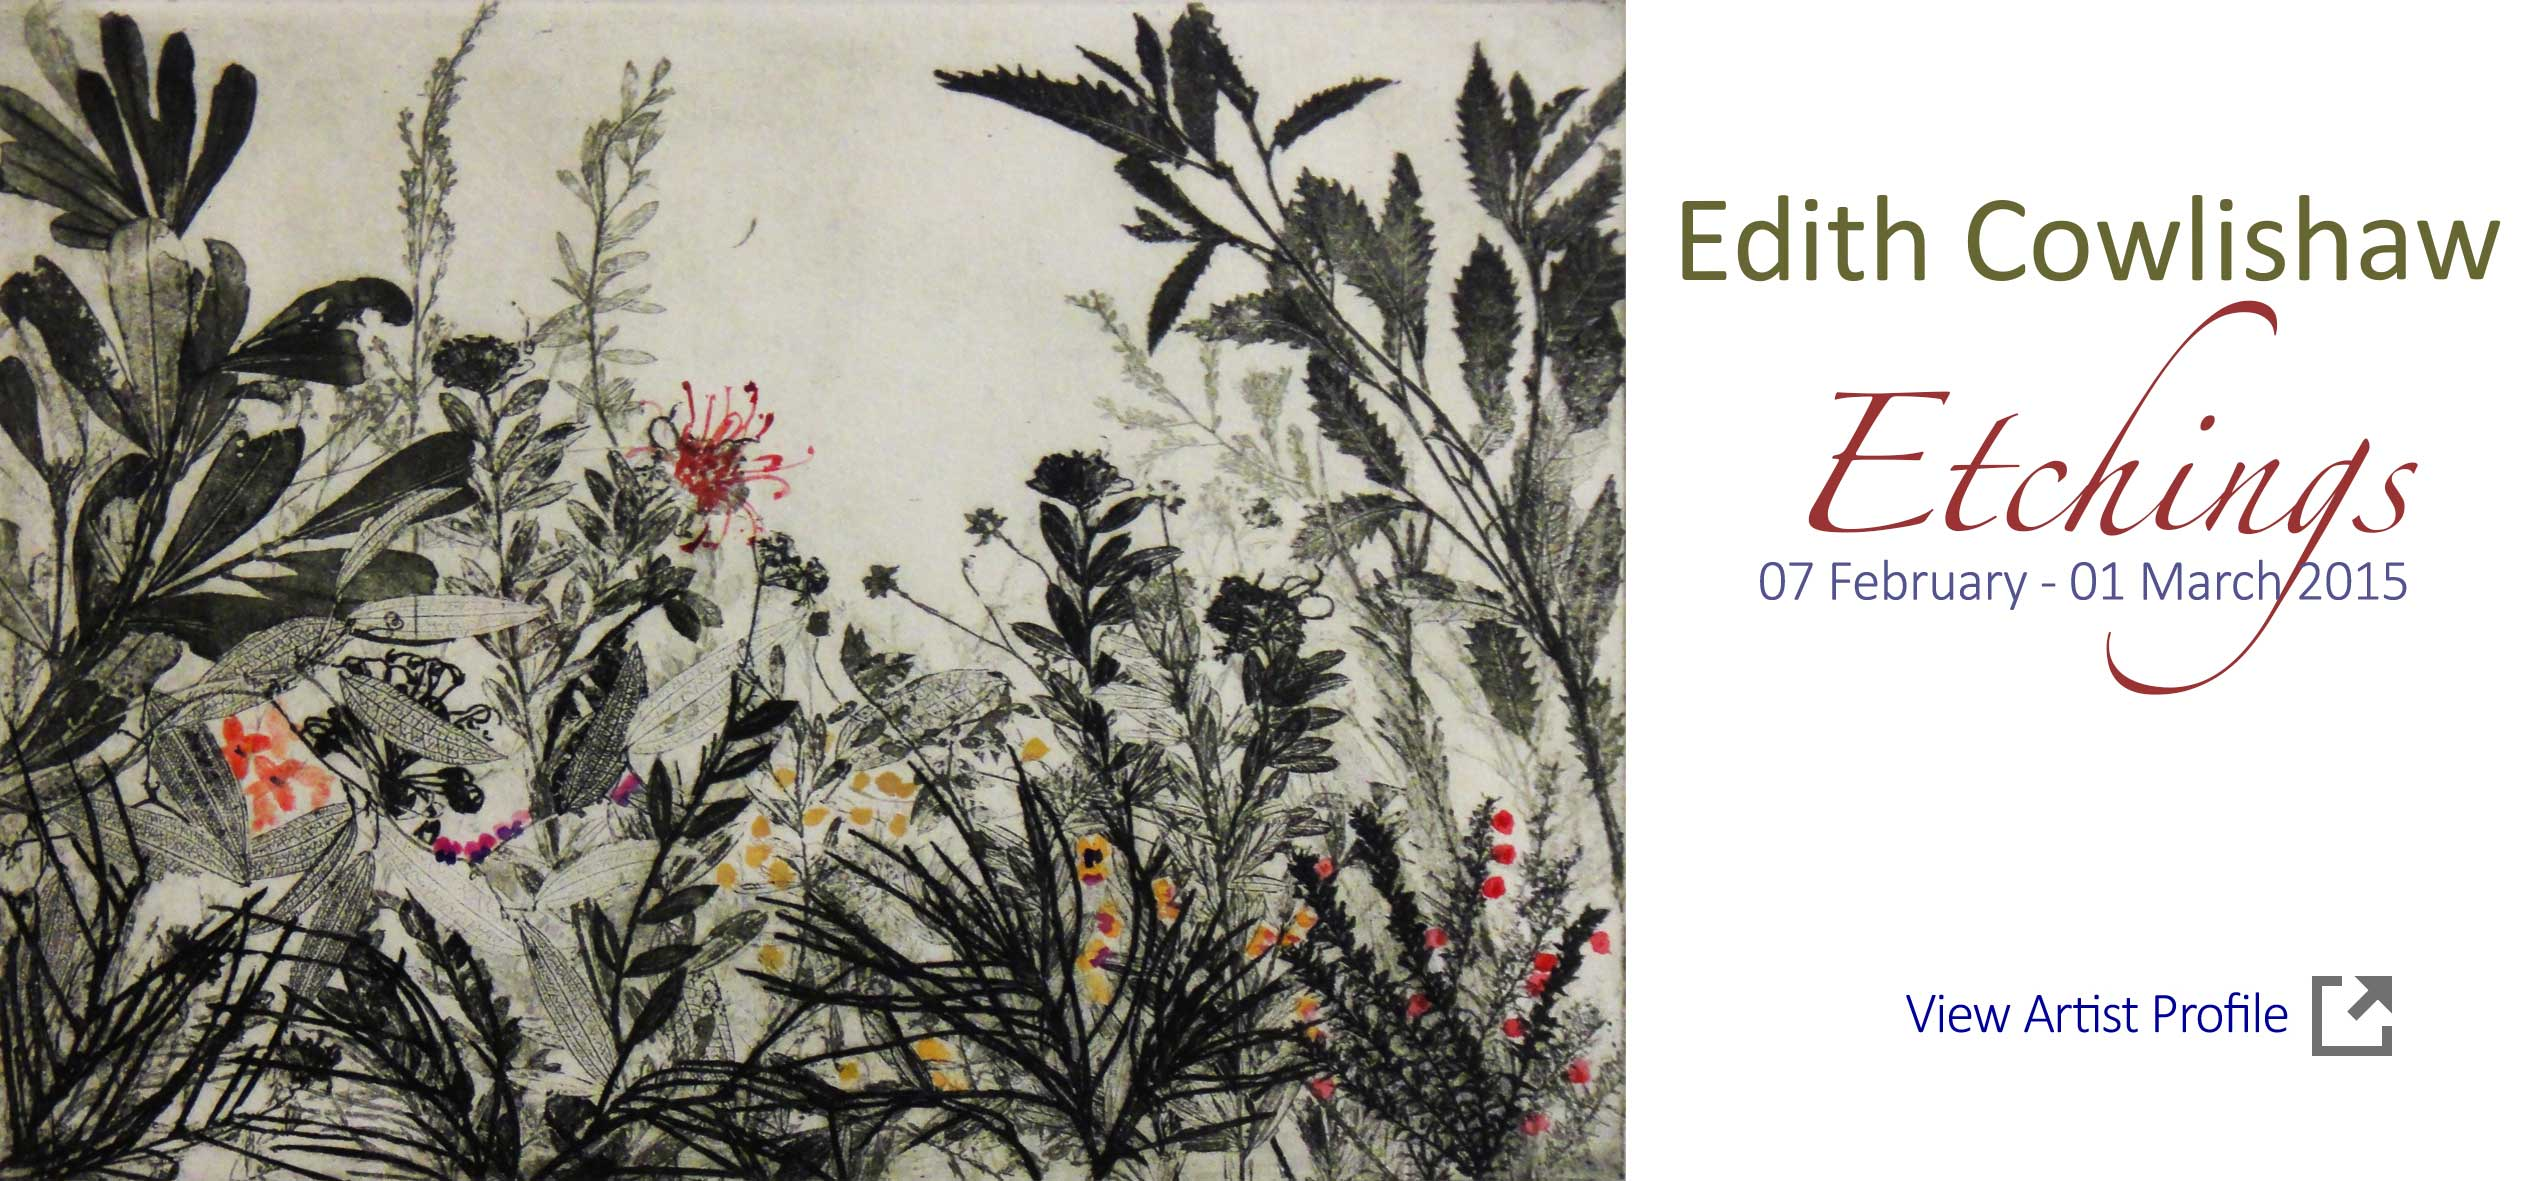 Artsite Gallery Exhibition  - Edith Cowlishaw - Etchings. Solo Exhibition - 07 February - 01 March 2015